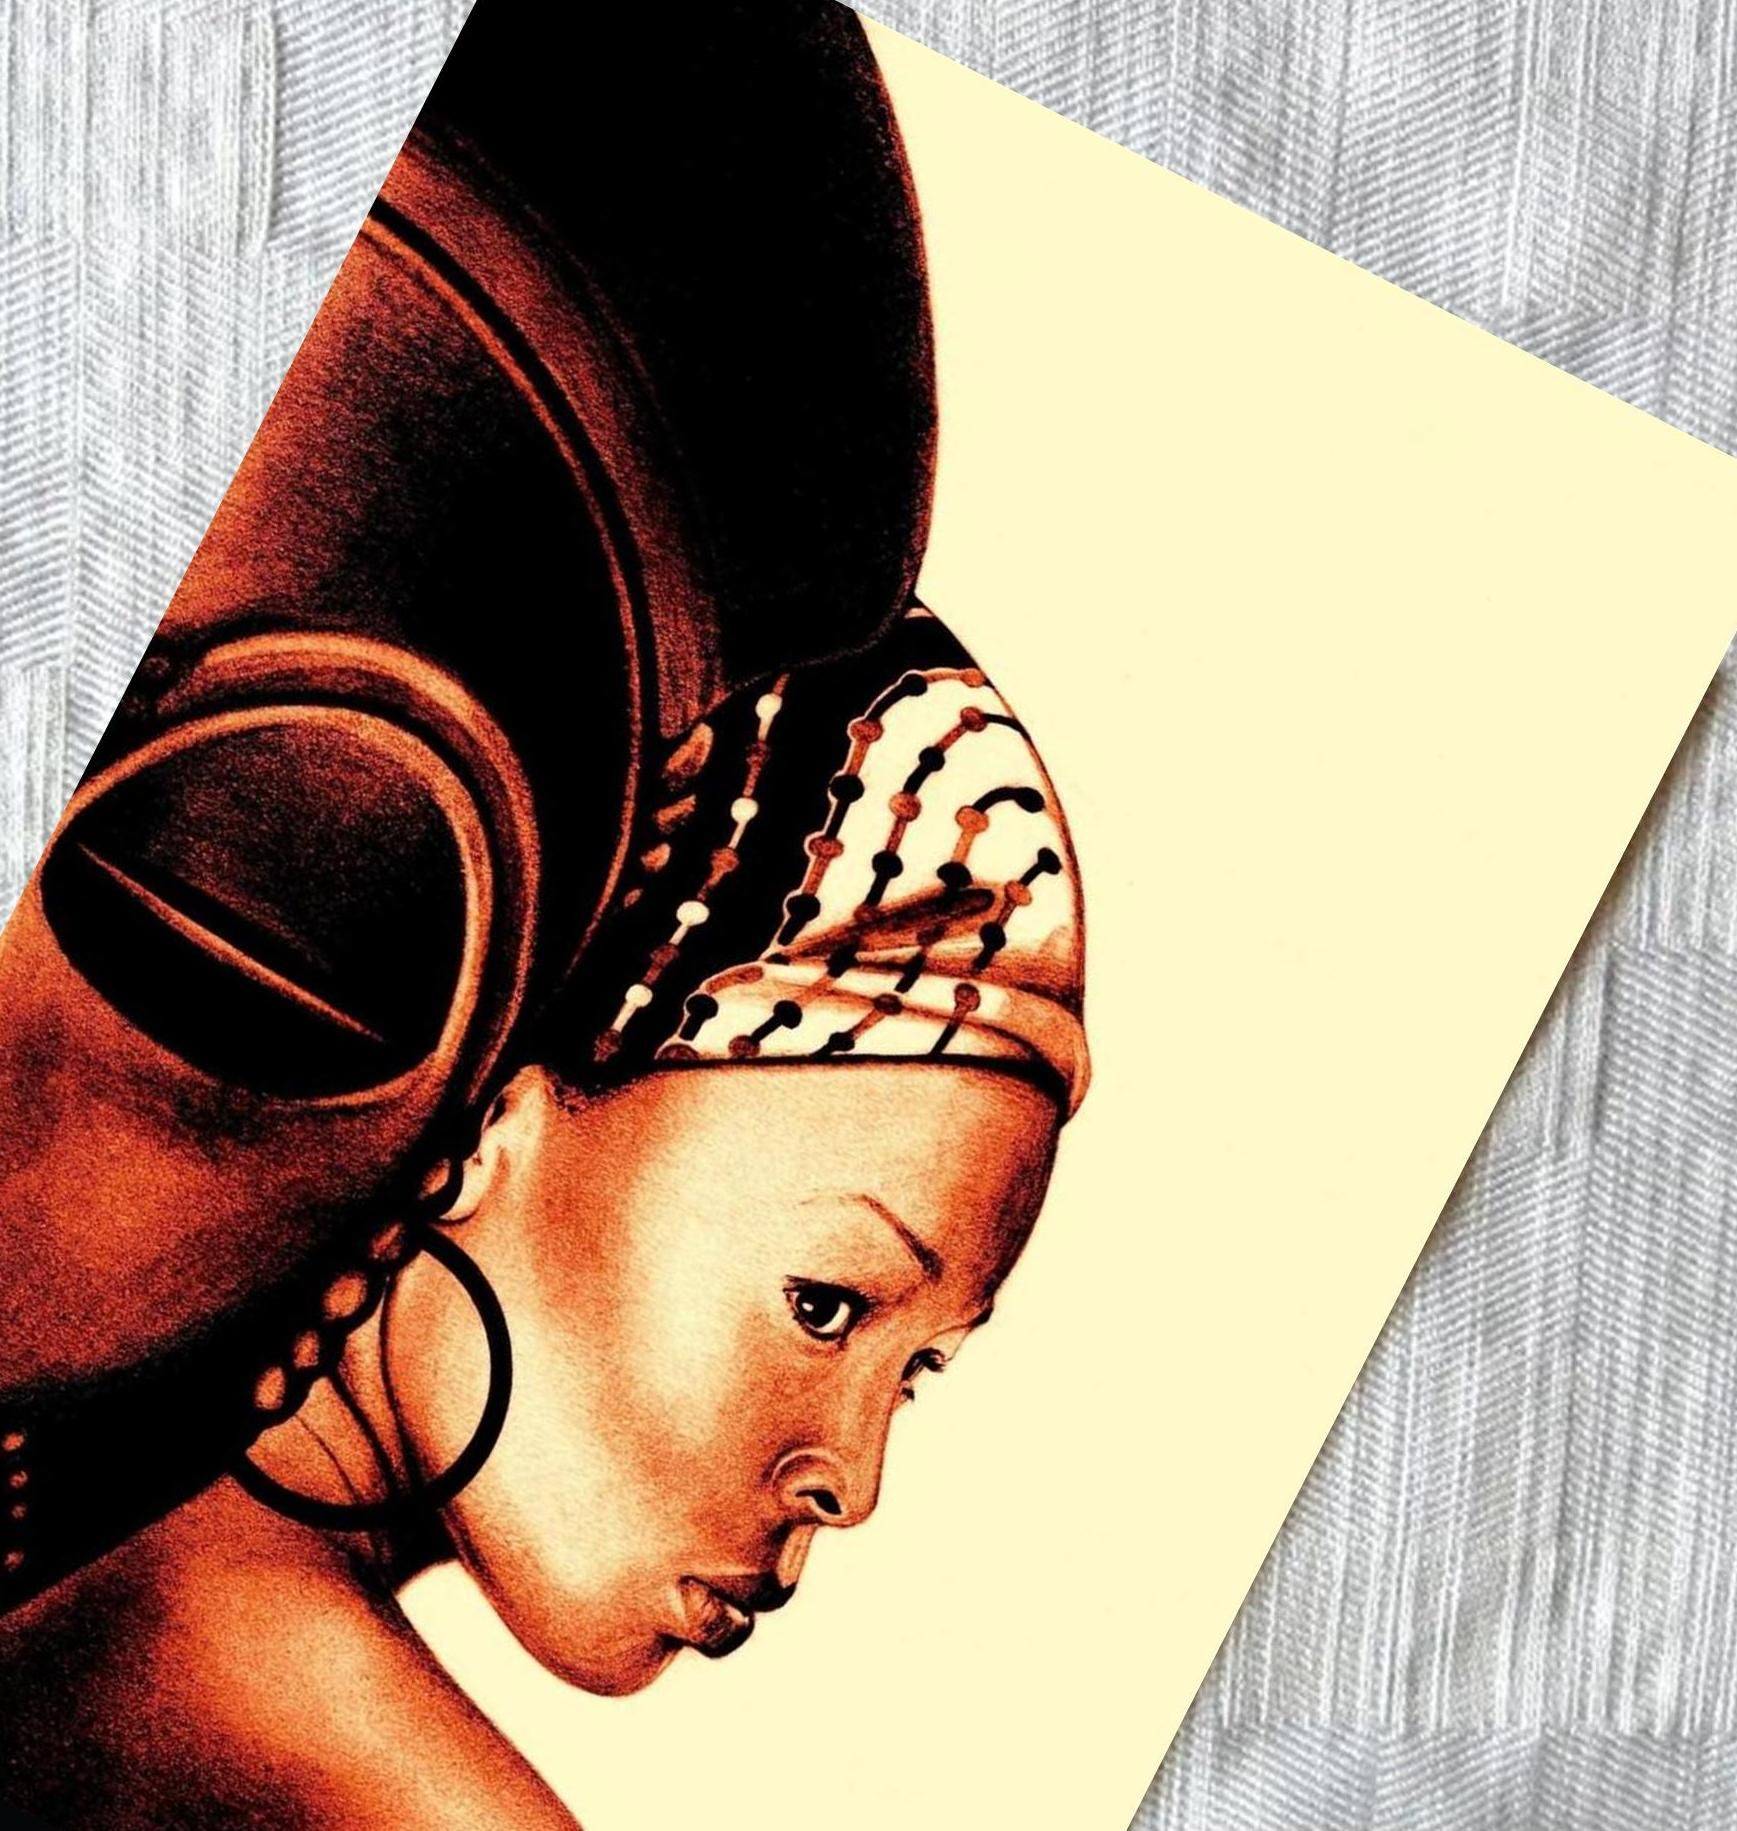 Use our african americanblack british culture cards to celebrate use our african americanblack british culture cards to celebrate life in your own likeness kristyandbryce Gallery